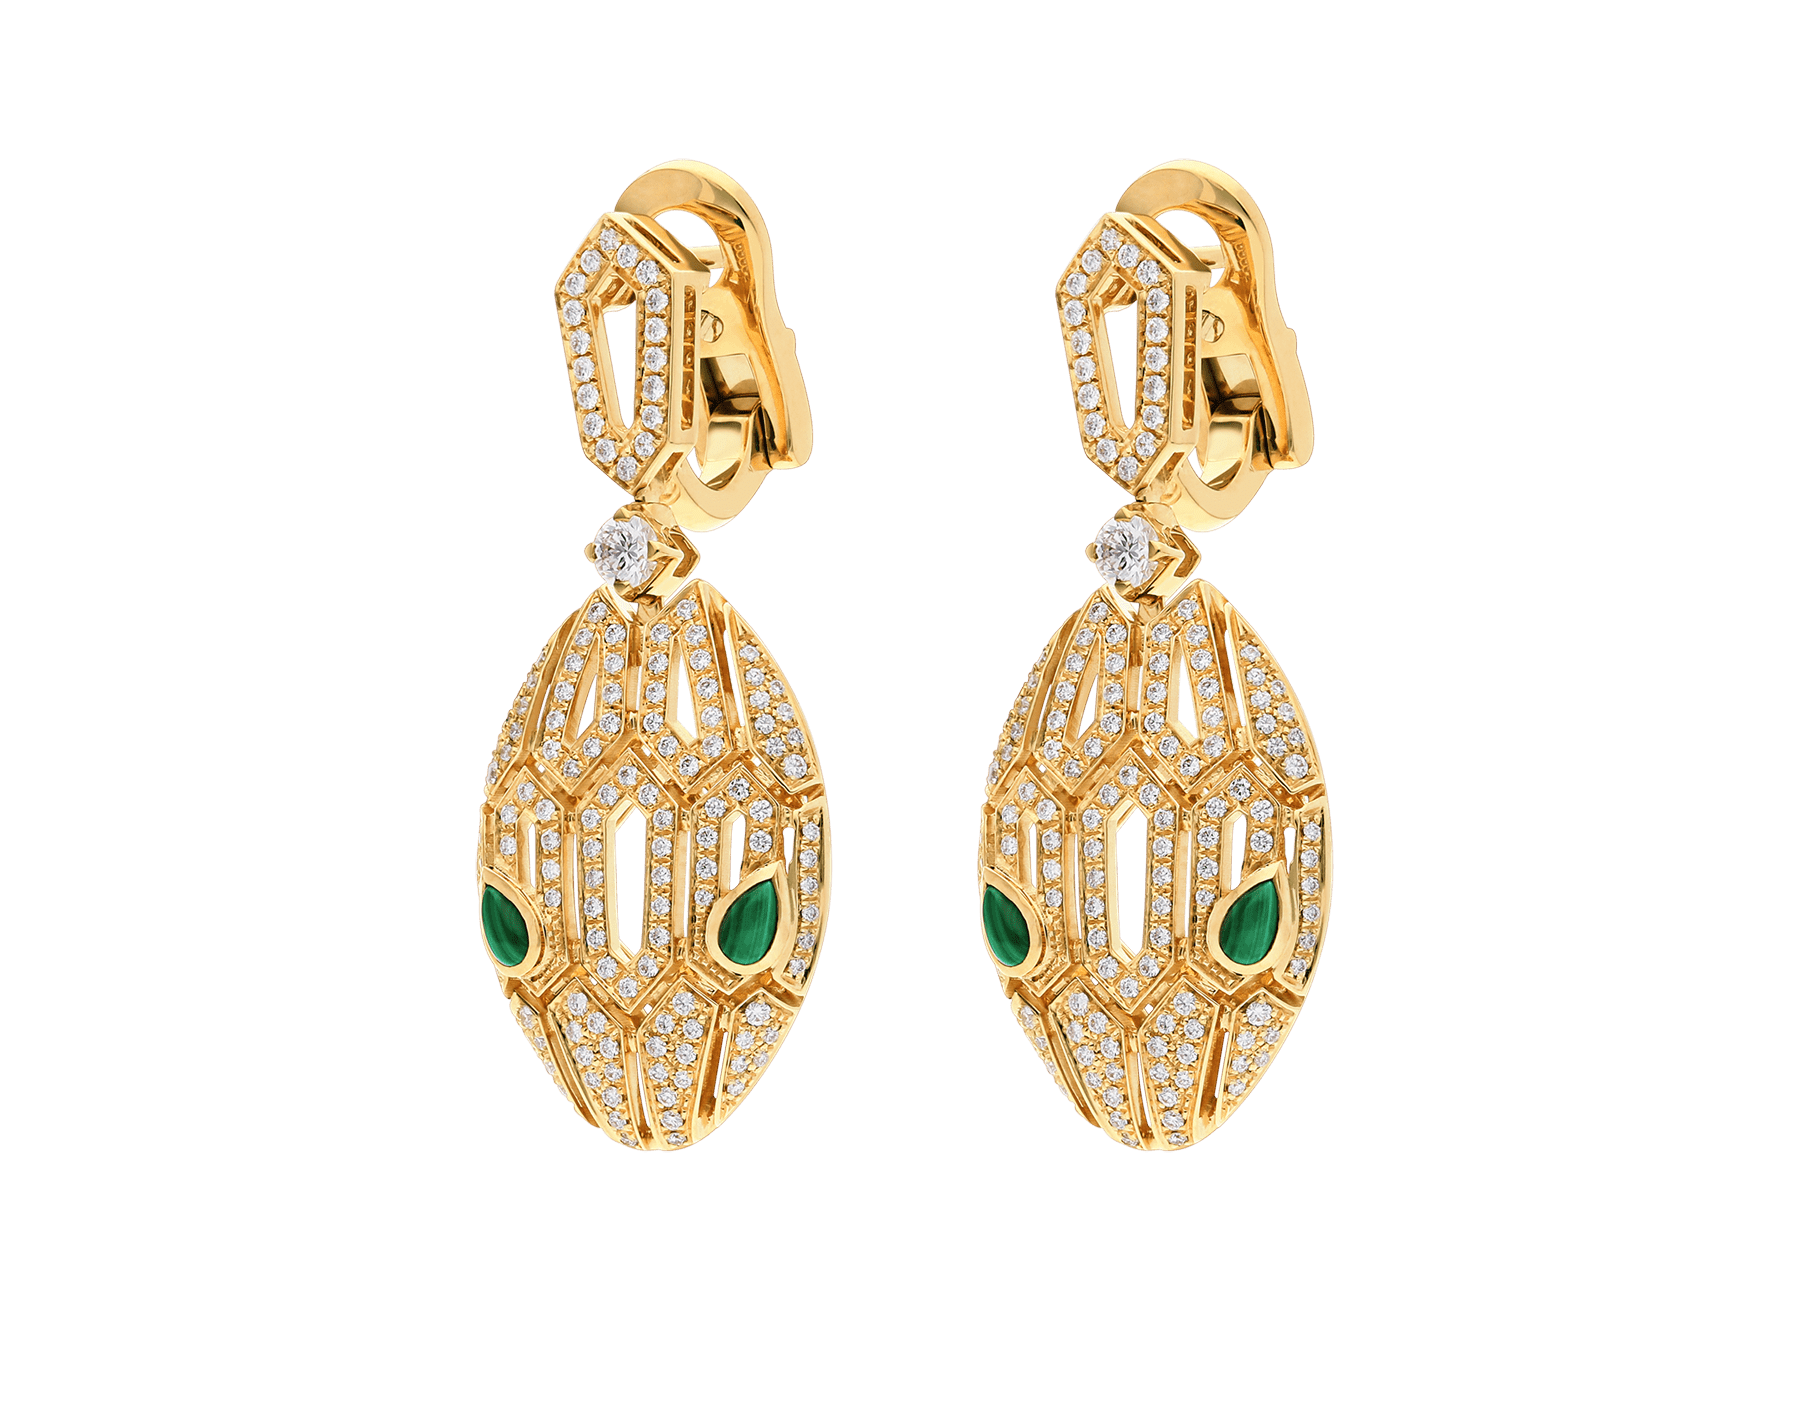 Boucles d'oreilles Serpenti en or jaune 18 K, yeux en malachite et pavé diamants 354576 image 2